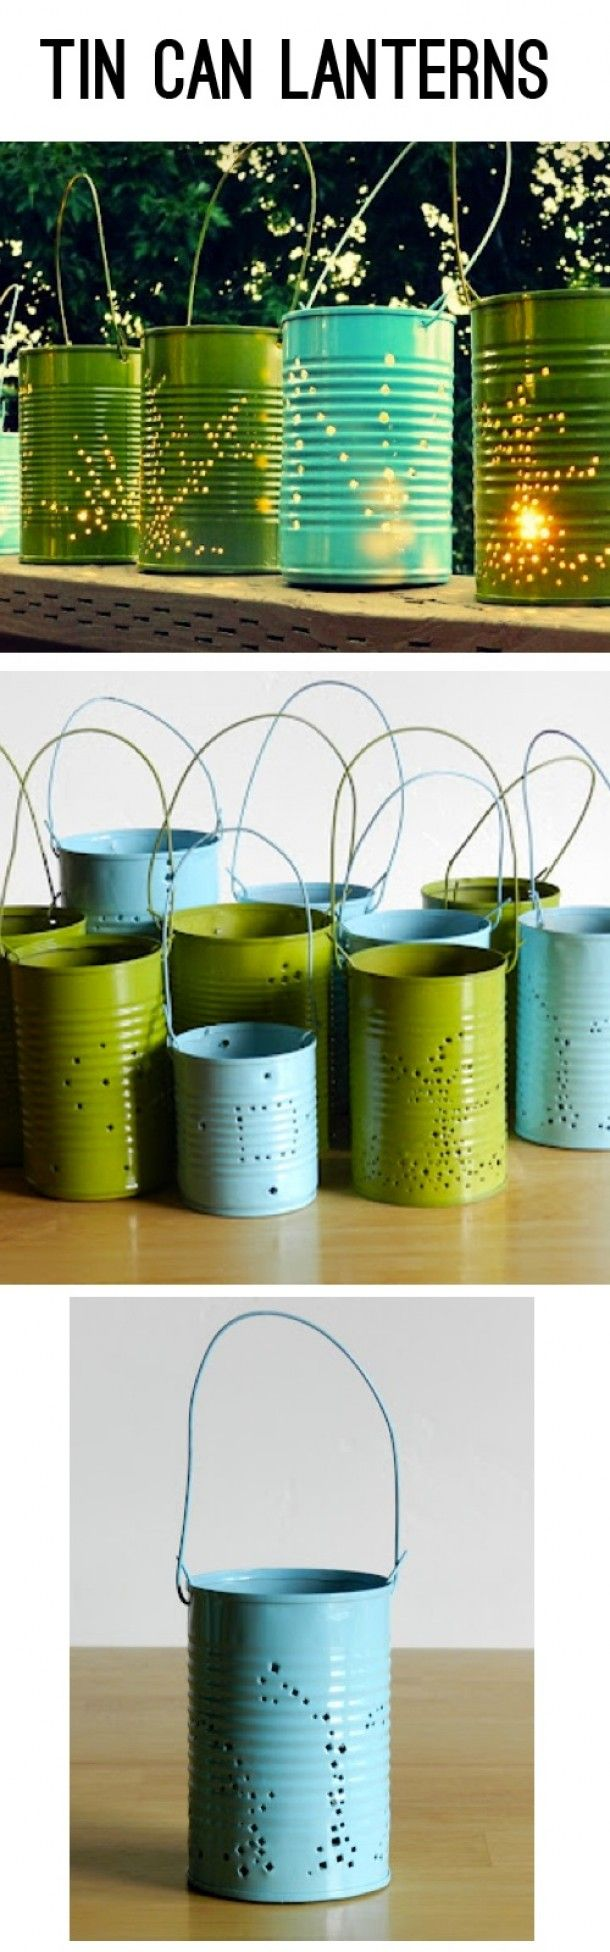 How to upcycle your tin cans into lanterns for summer! - Summer Crafts - DIY Crafts - Upcycling - Creative - Ideas - Inspiration